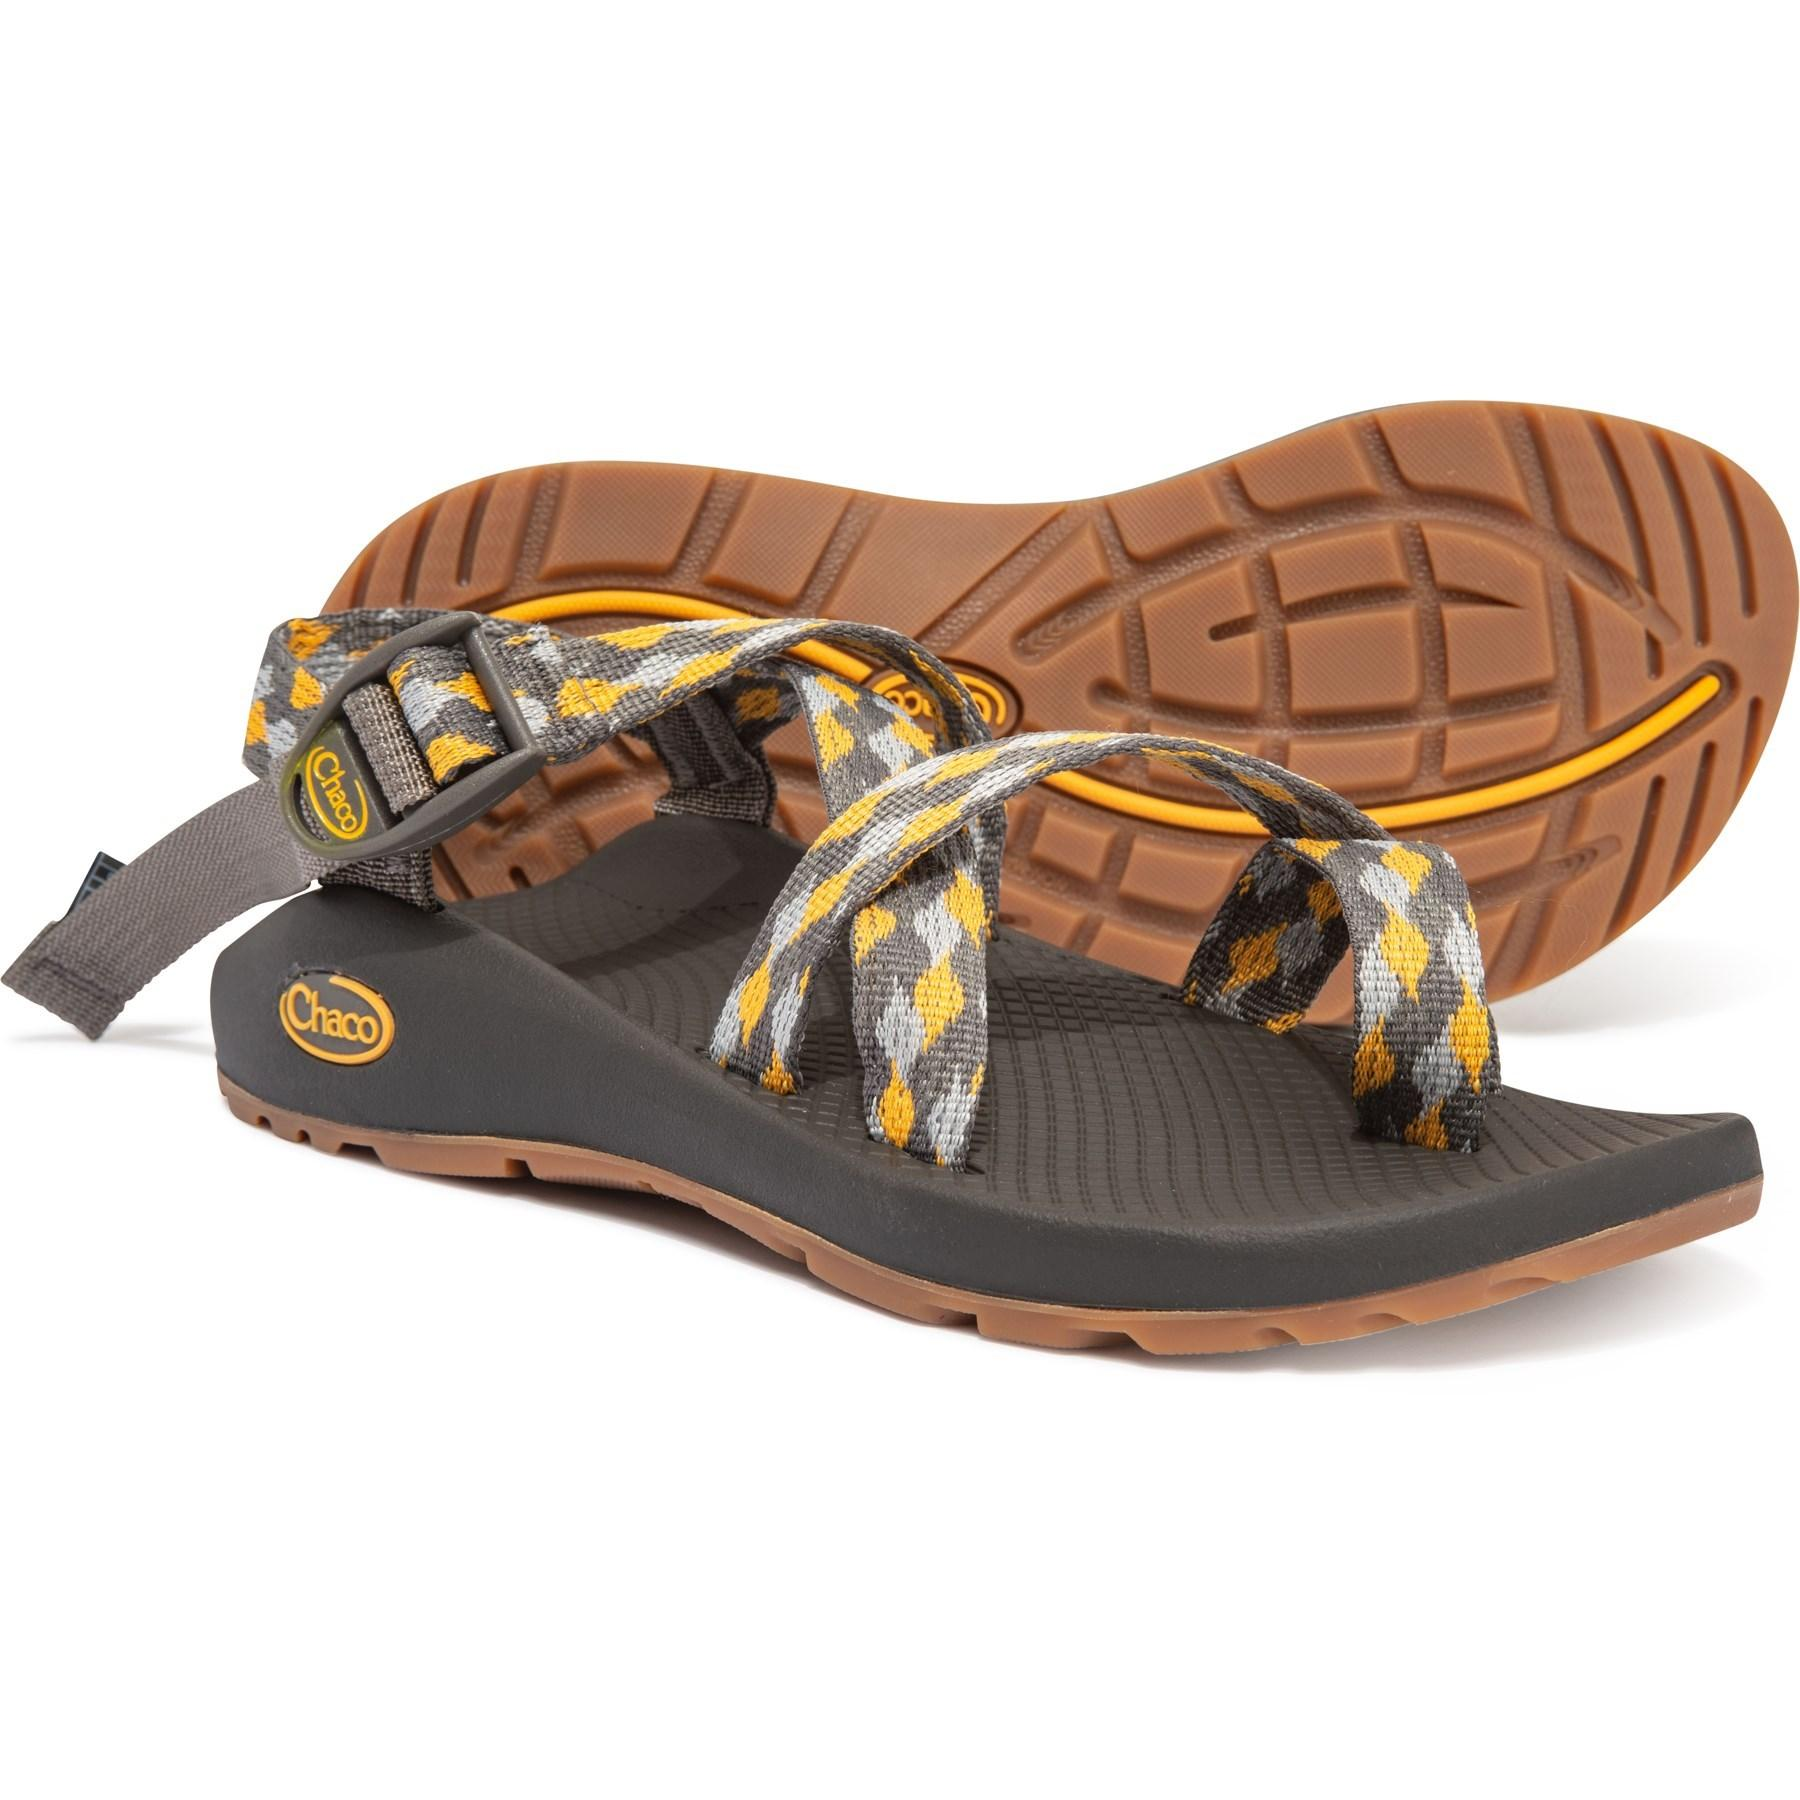 7b9075caf3ed Chaco - Multicolor Z 2 Classic Sport Sandals (for Women) - Lyst. View  fullscreen